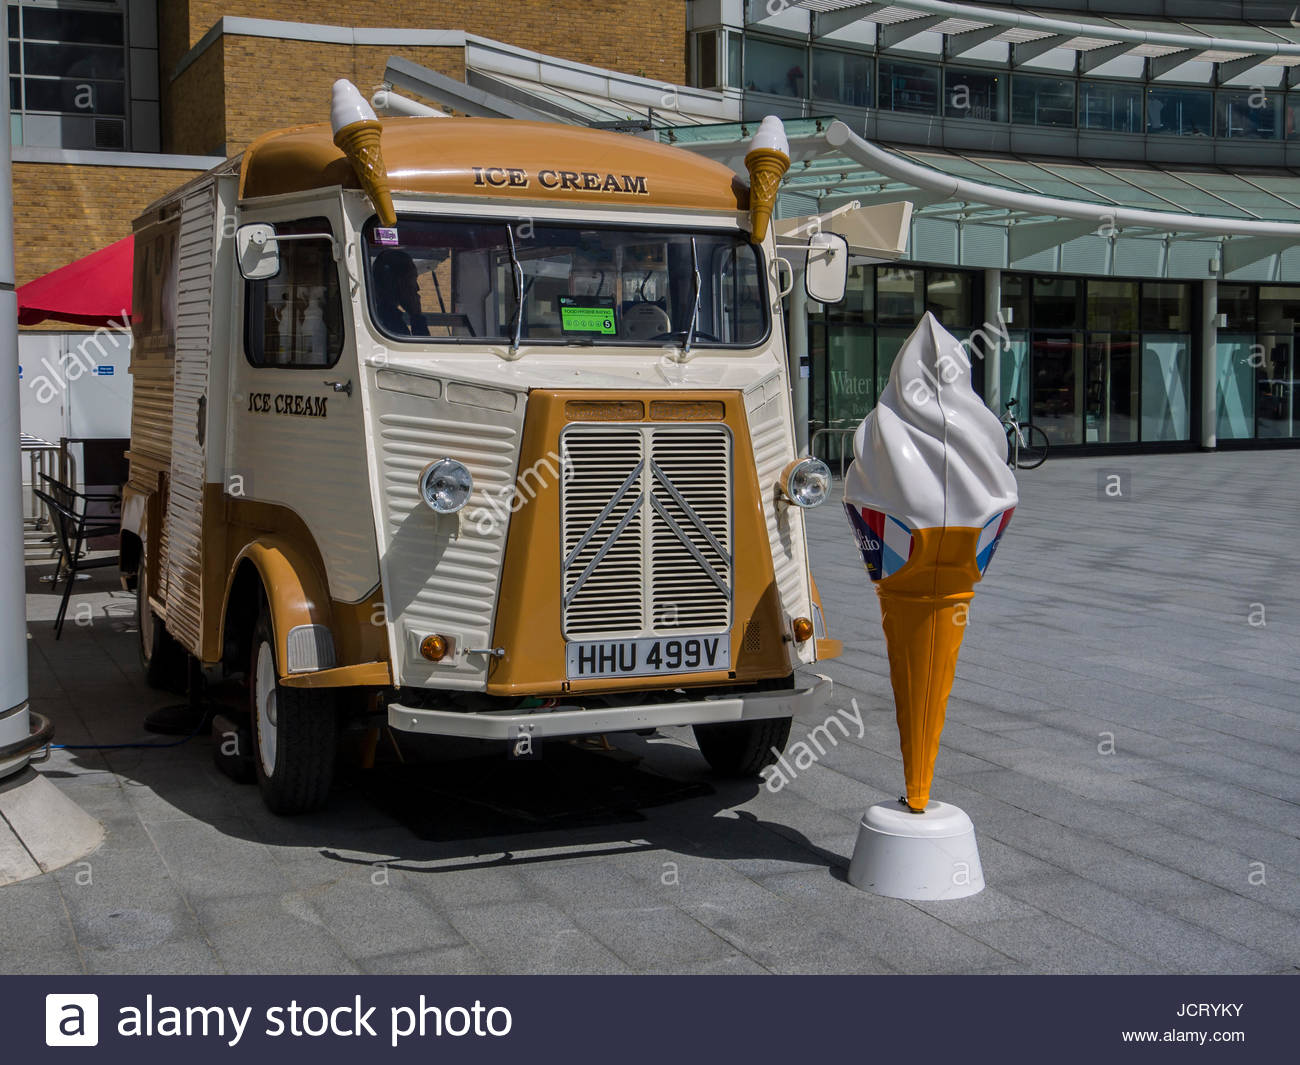 West Quay Shopping Französisch Ice Cream Van Southampton Hampshire England Stockbild